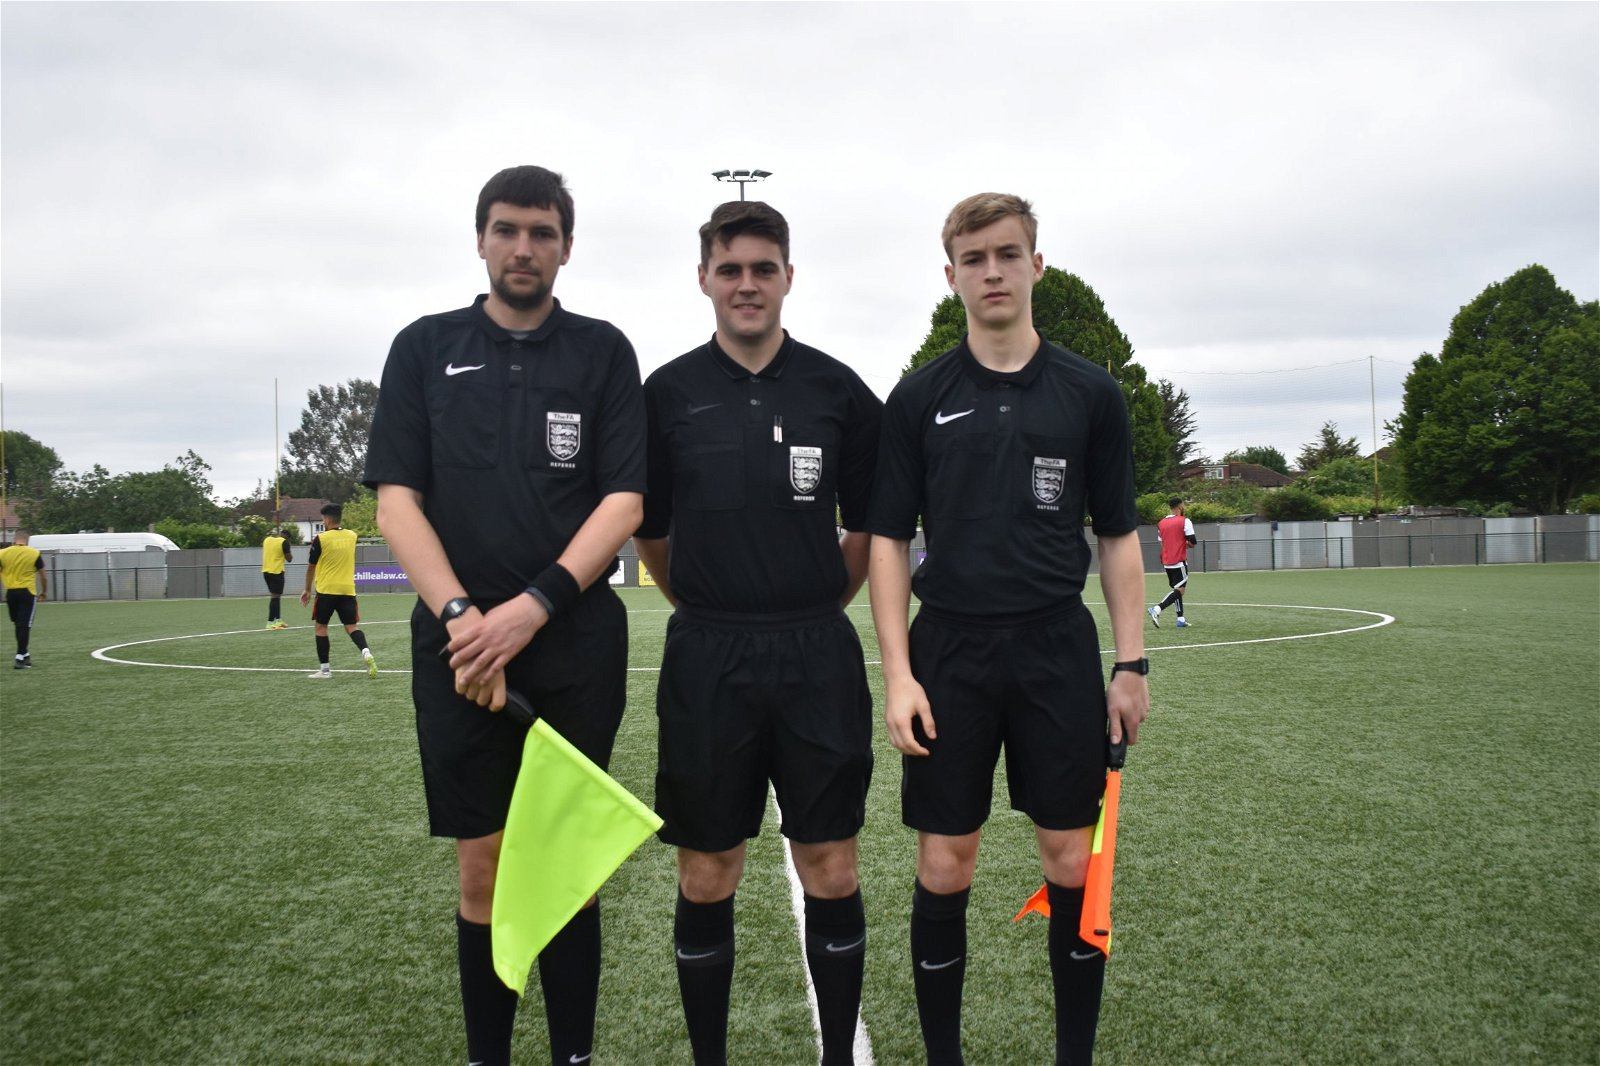 3 hashtag academy 19 refs line up - [Images] - Take a look at the best photos from the third day of the Hashtag Academy!